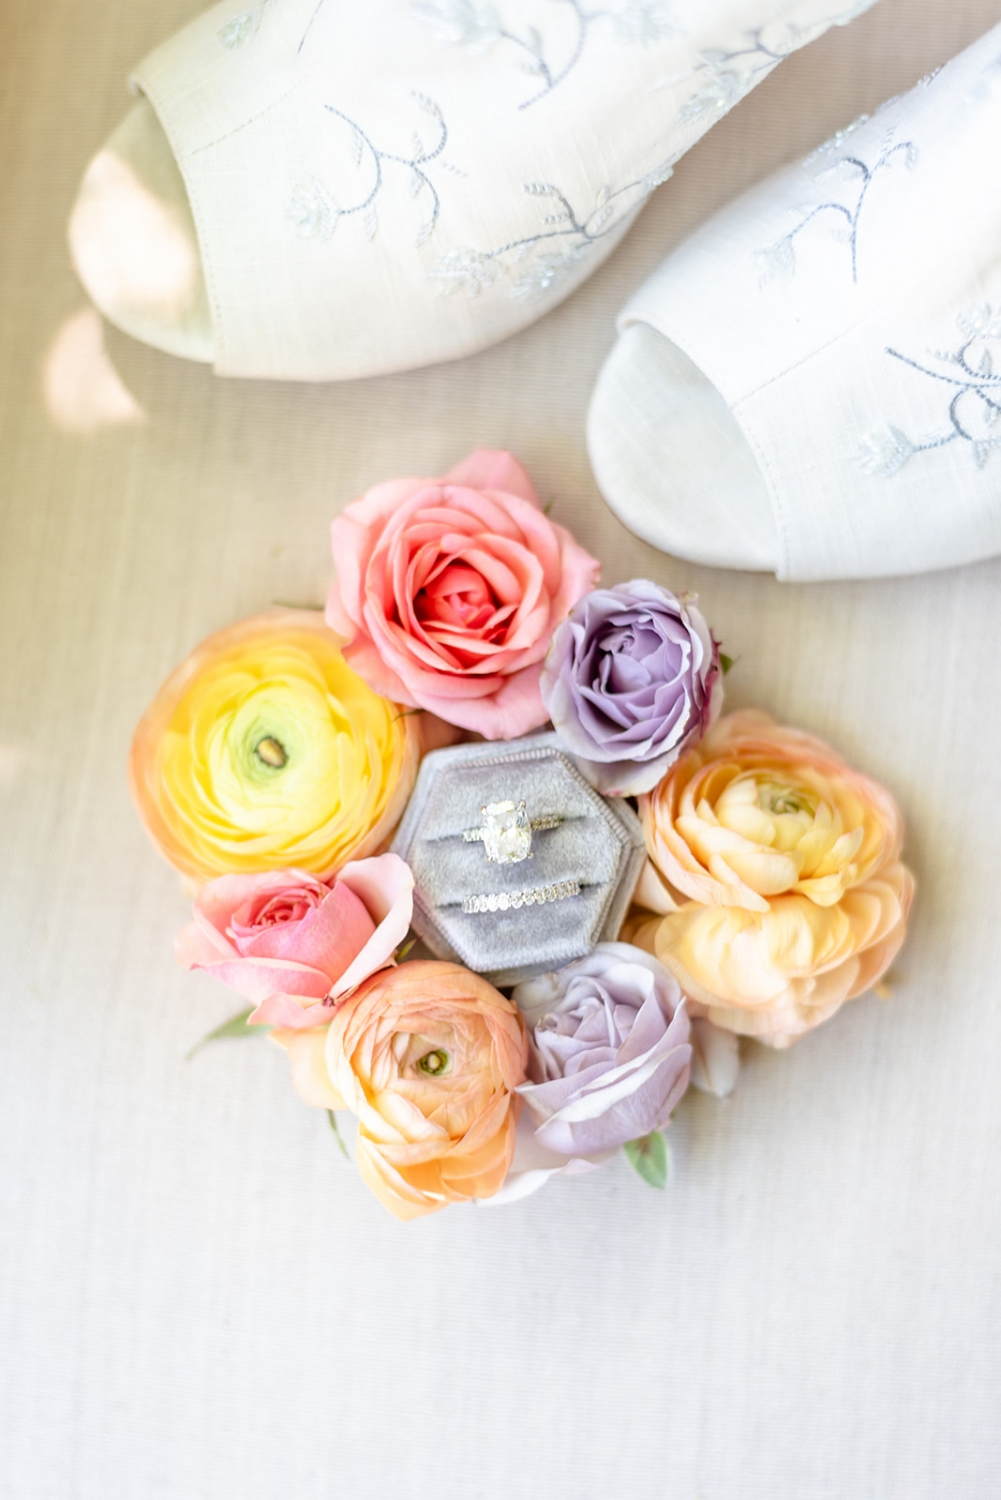 grey ring box surrounded by fresh colorful flowers